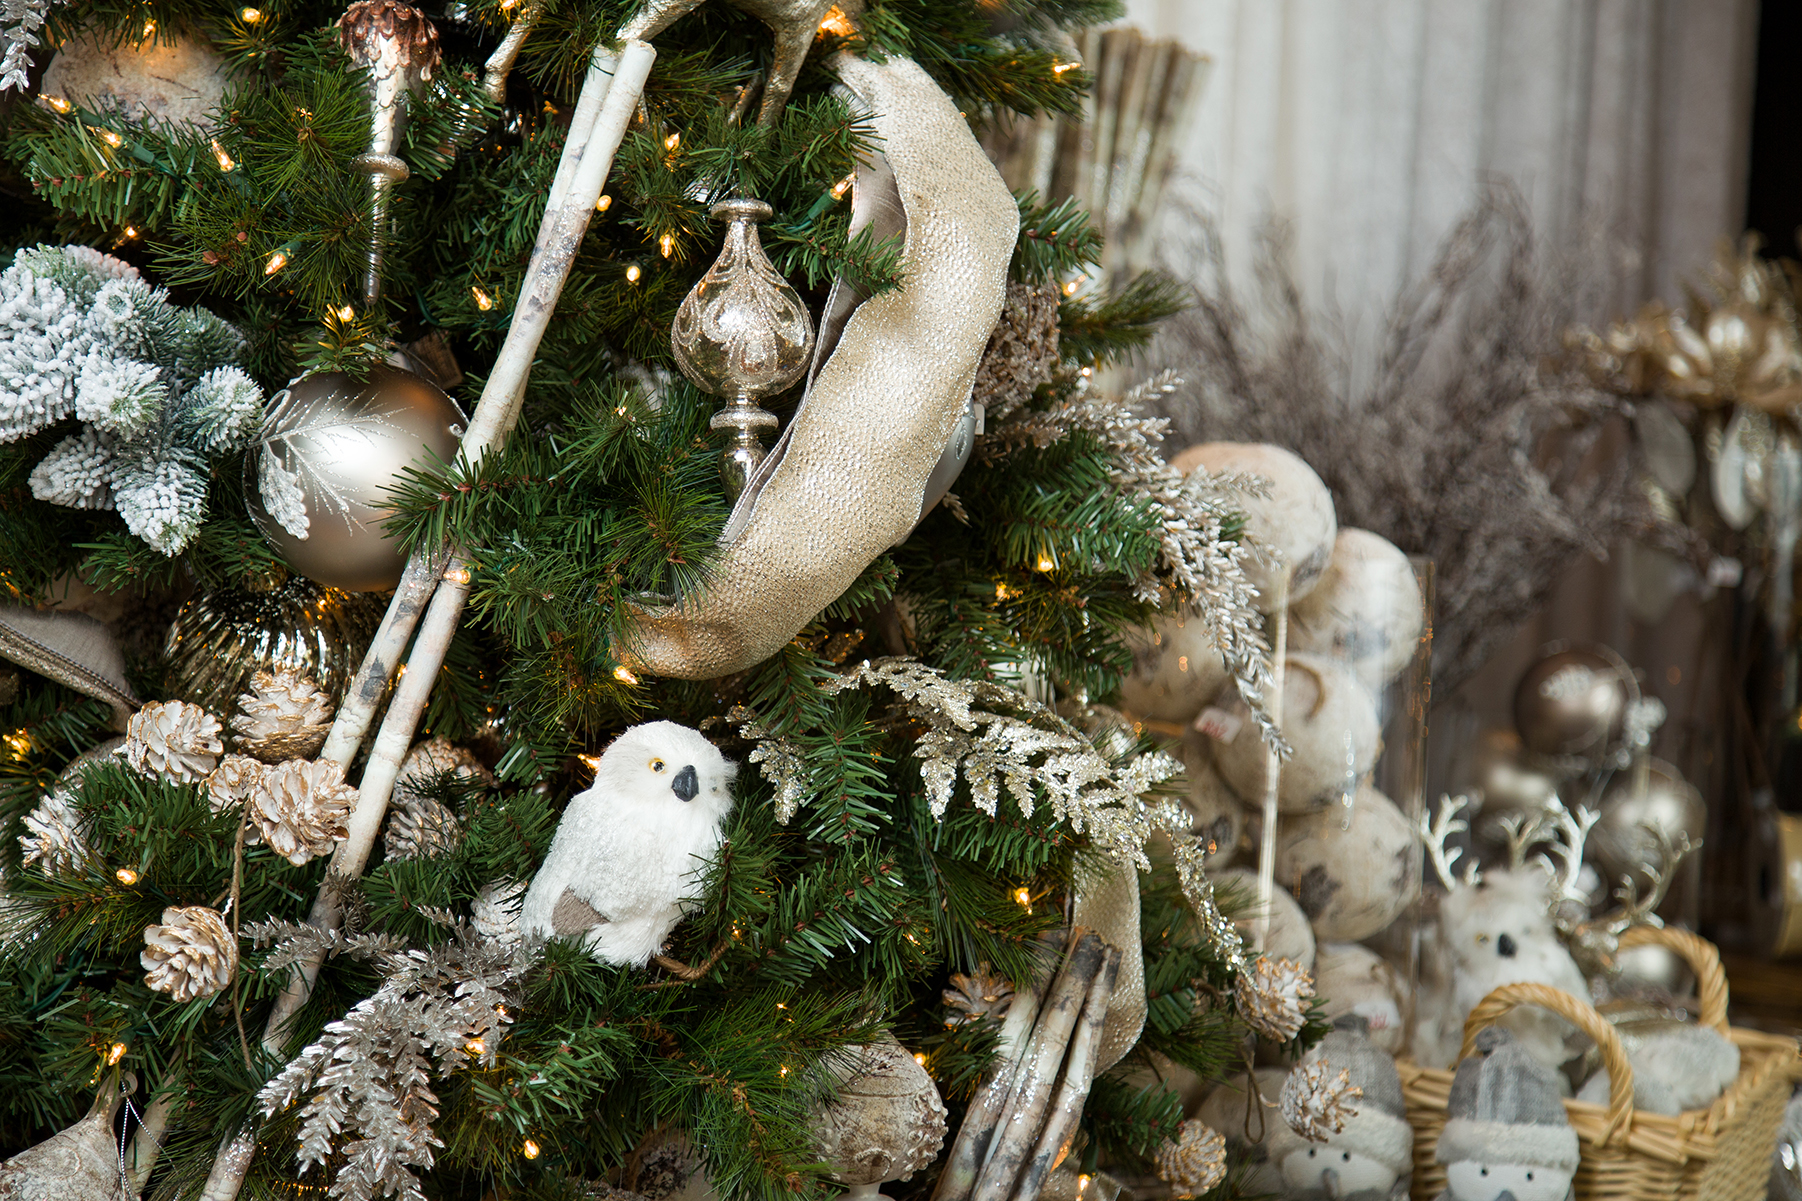 closeup of a Christmas tree adorned with Ivory, gold and silver ornaments with a decorated table on the bottom left behind the tree